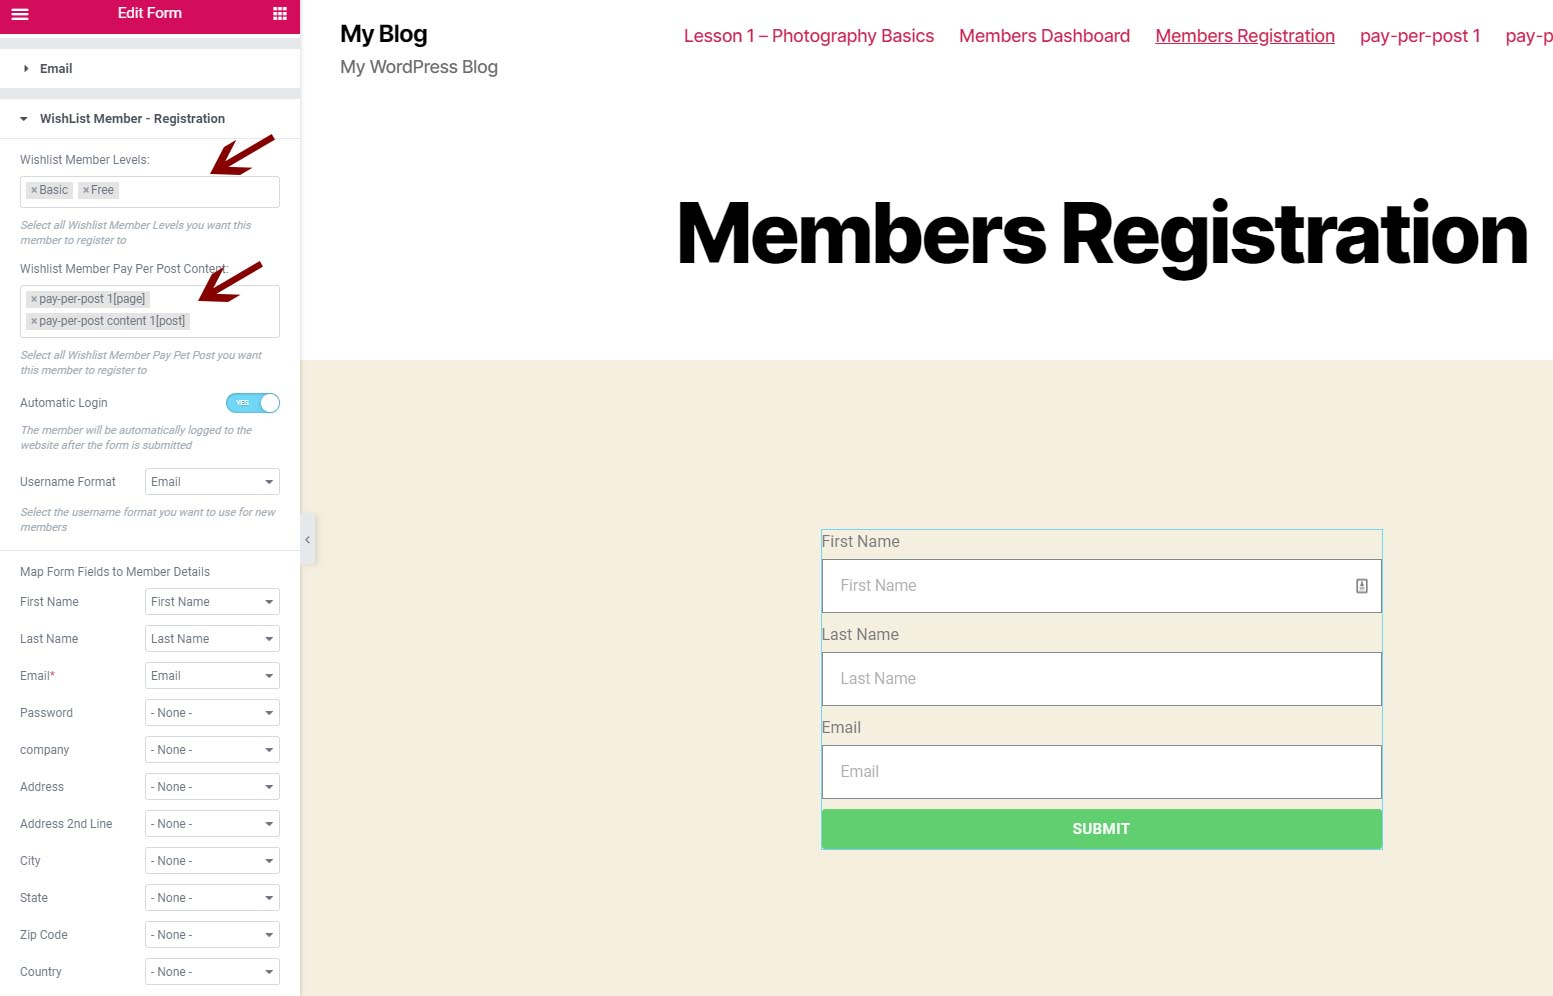 Define WishList Member membership levels and pay-per-post content (Step #4)